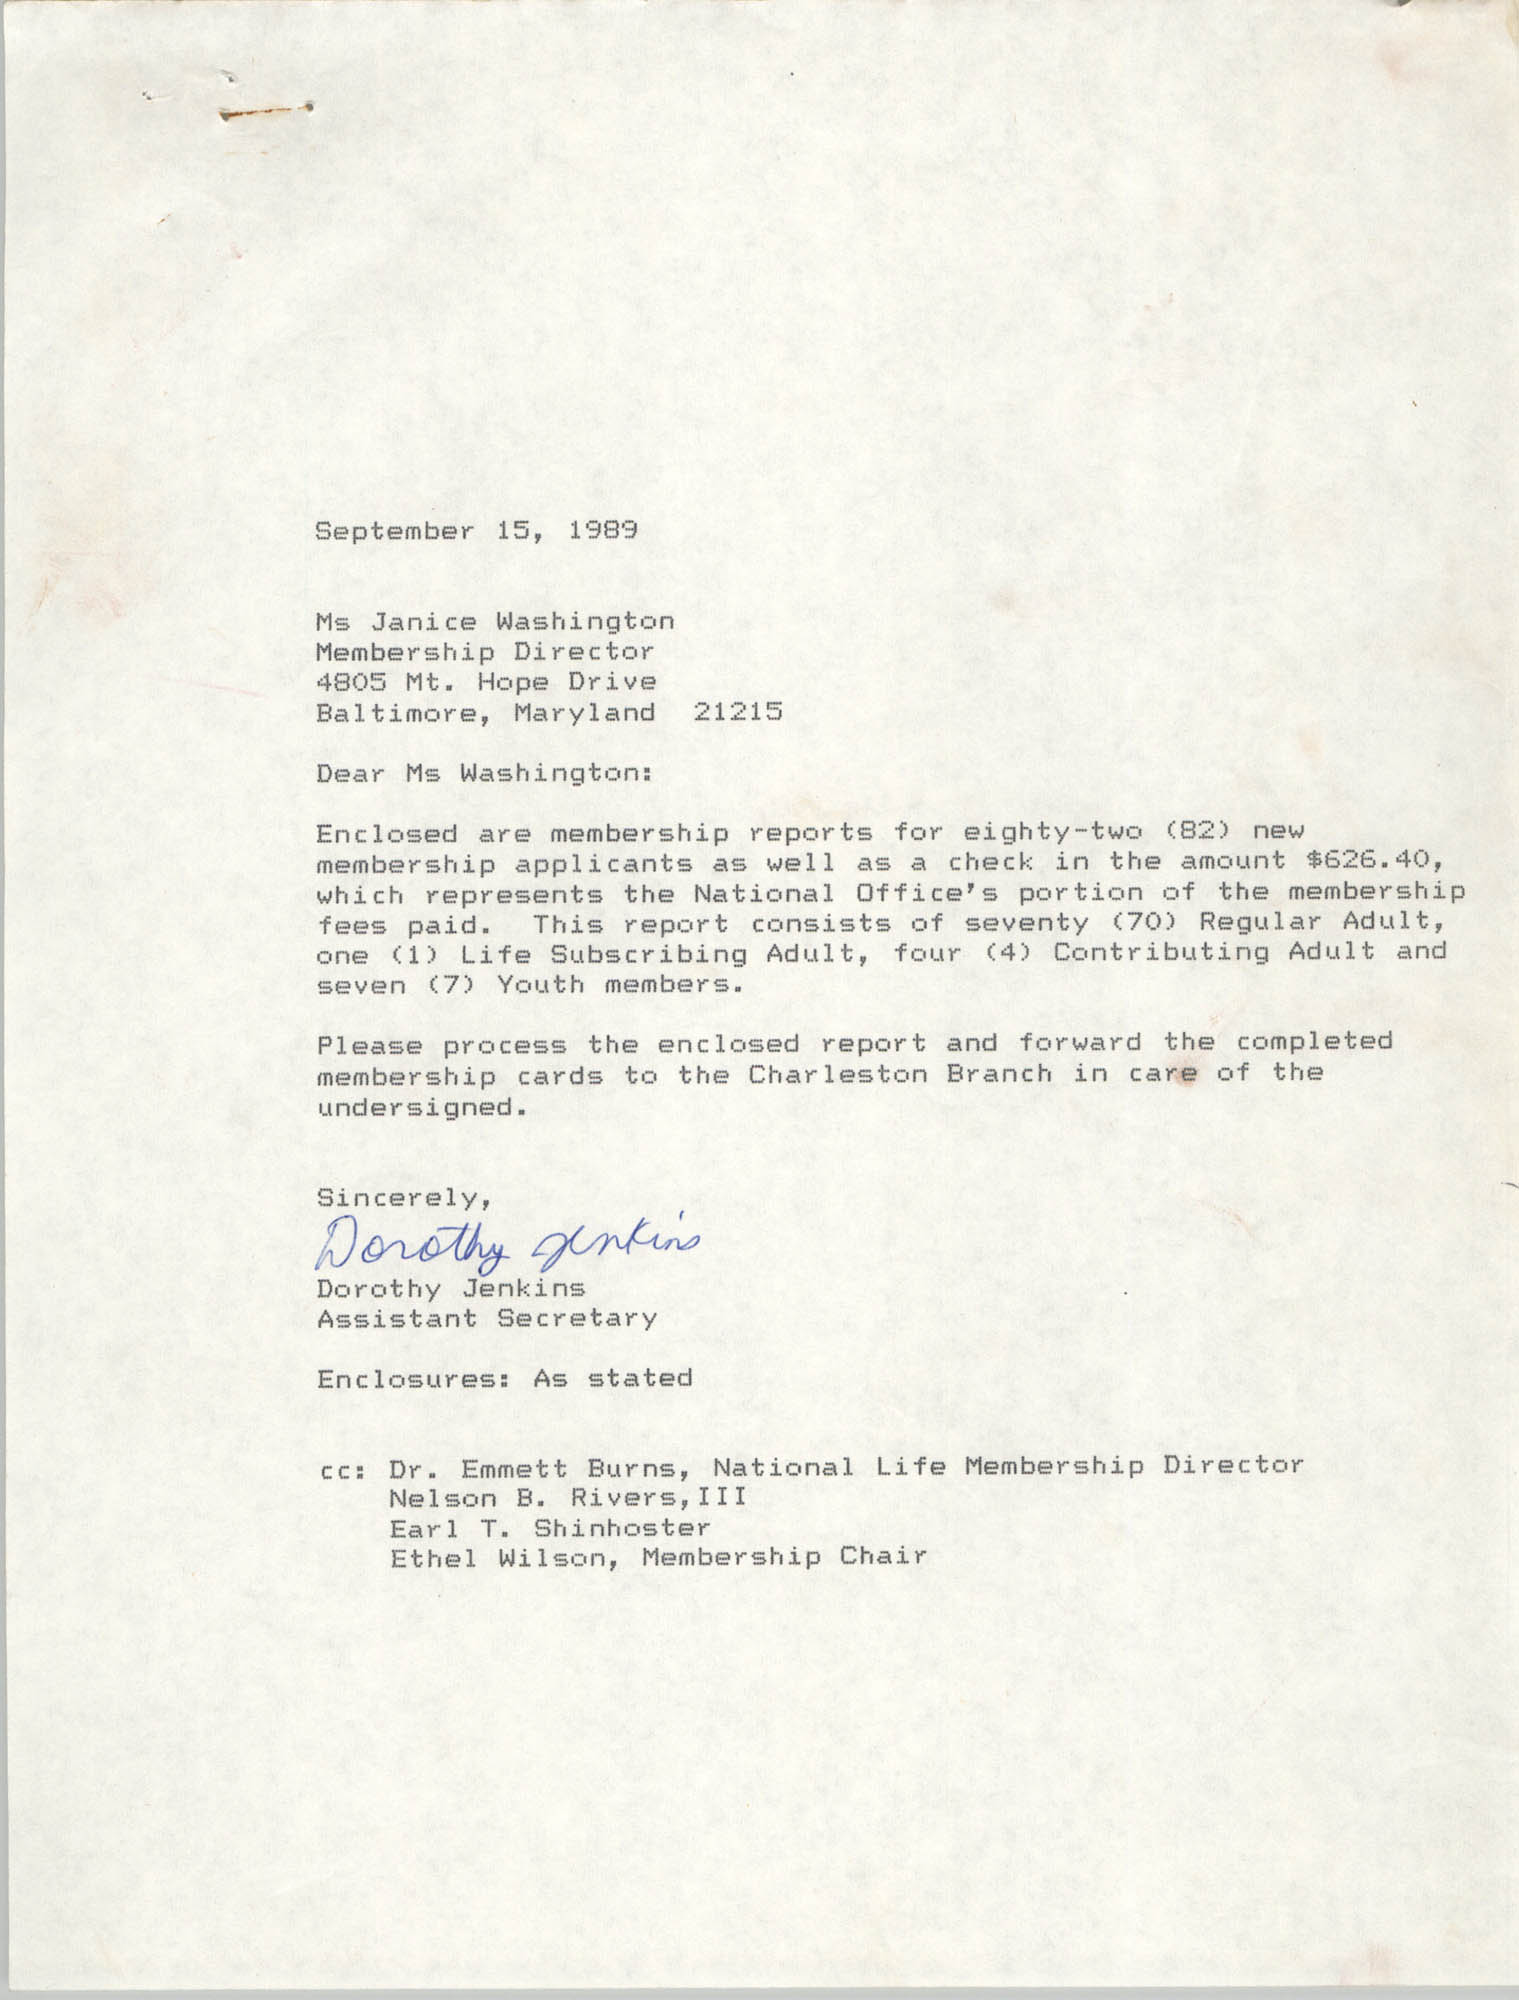 Letter from Dorothy Jenkins to Janice Washington, NAACP, September 15, 1989